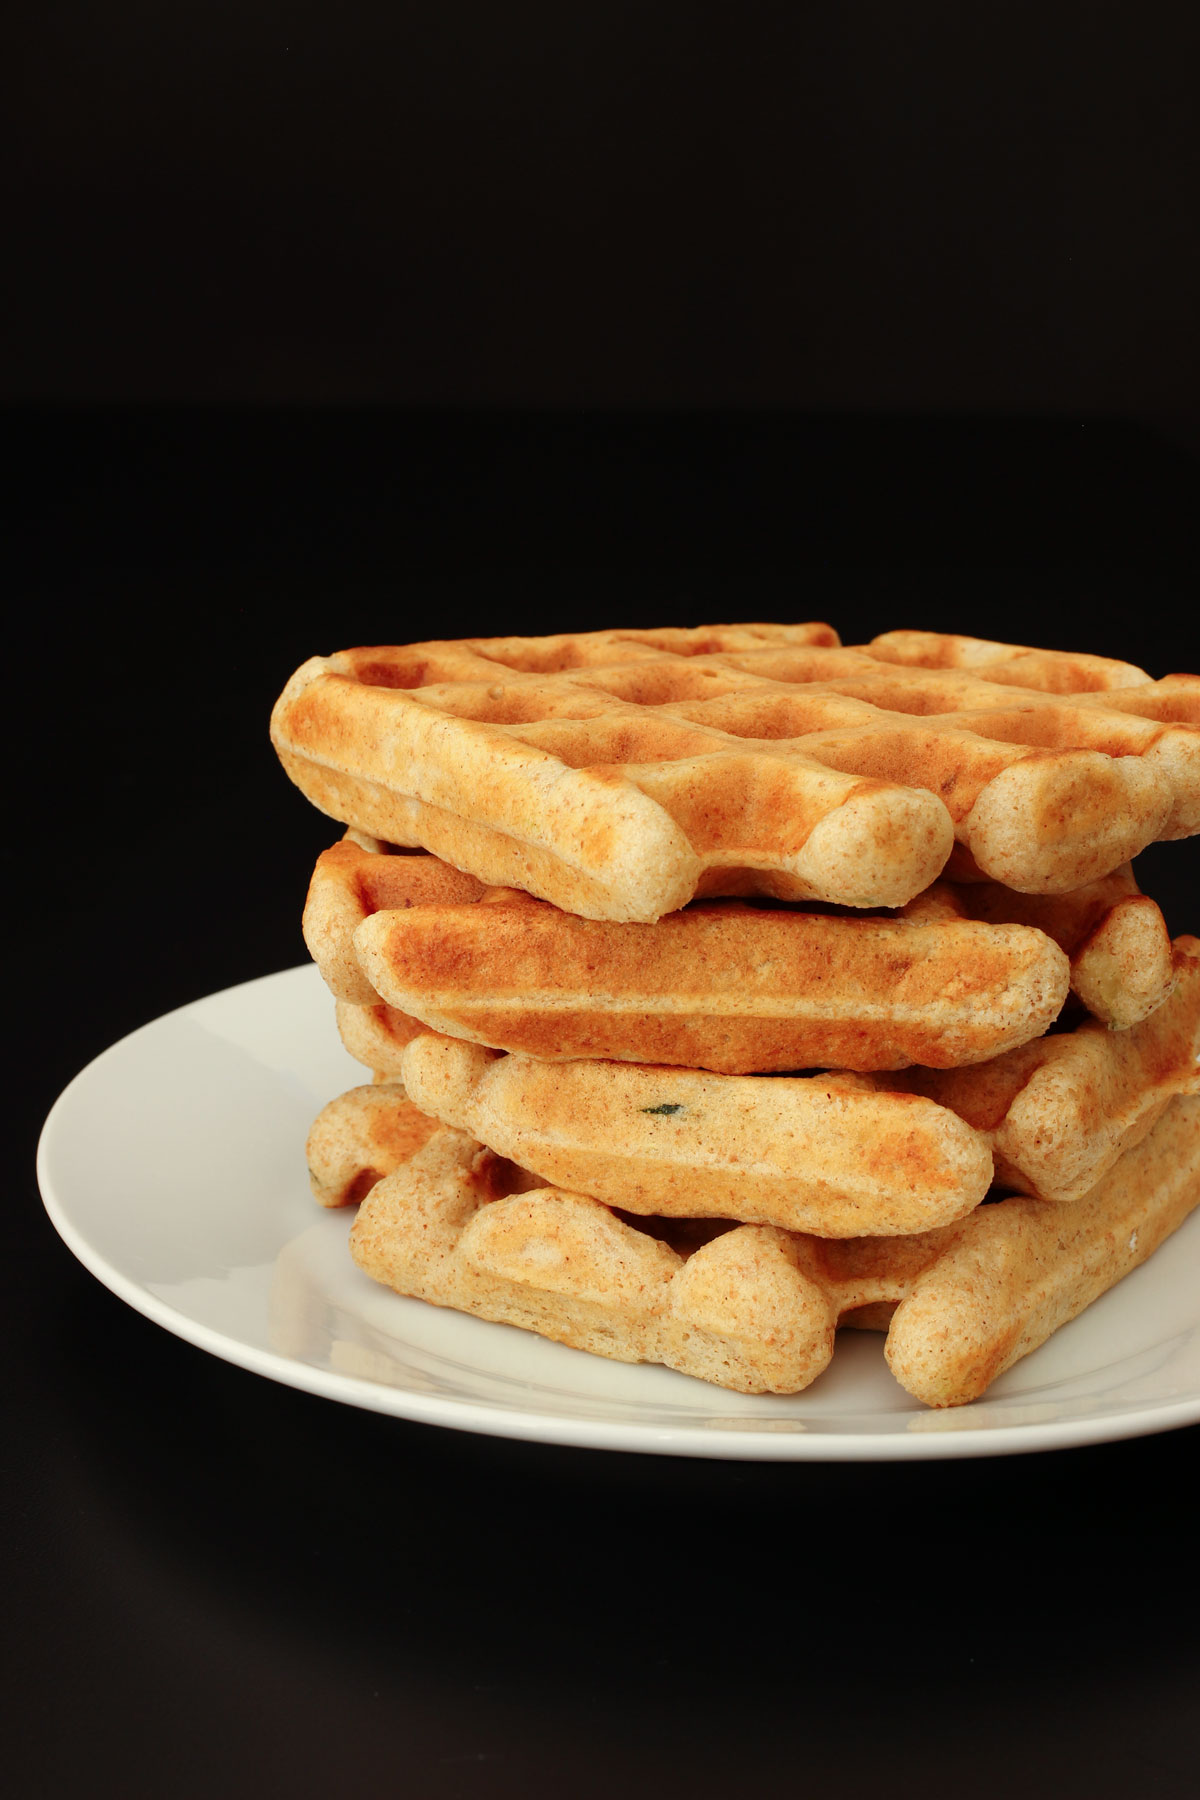 cooked cinnamon waffles stacked on a white plate.